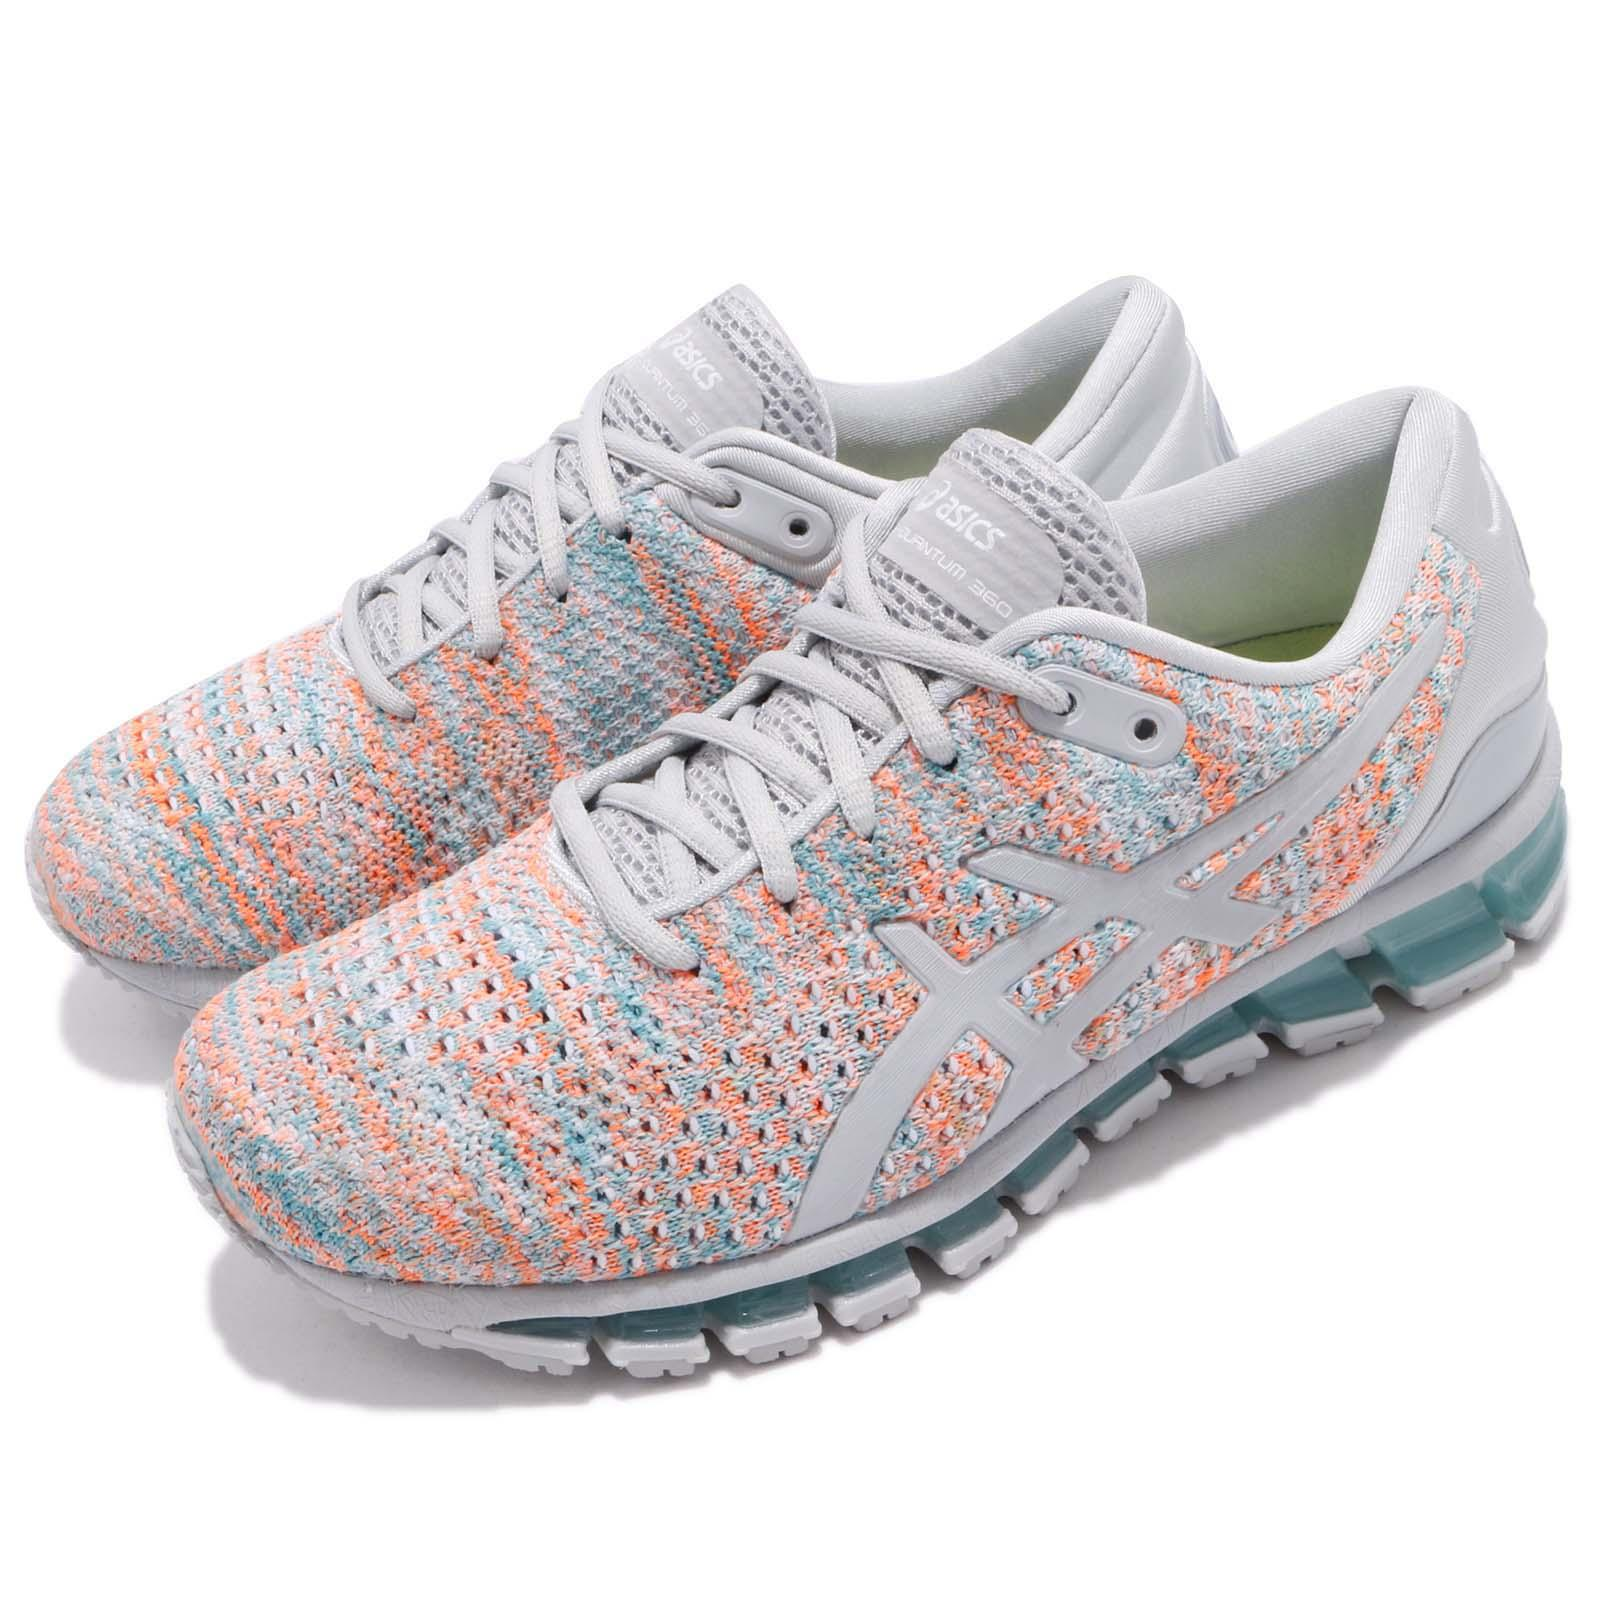 Details about Asics Gel-Quantum 360 Knit 2 II Grey Orange Blue Women  Running Shoes T890N-9609